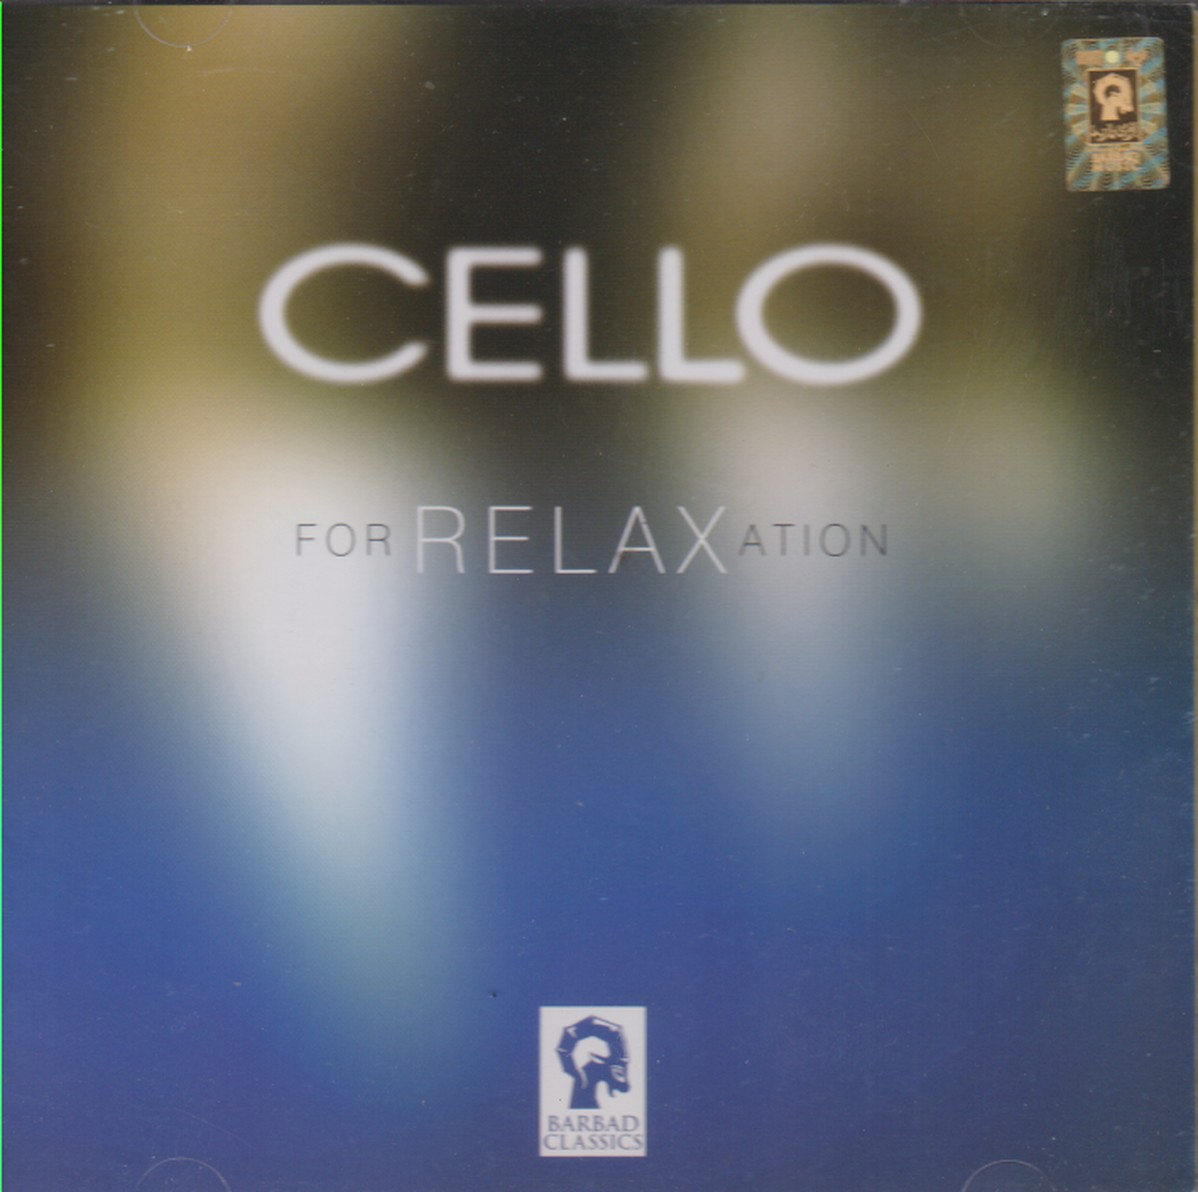 CELLO for relaxtion